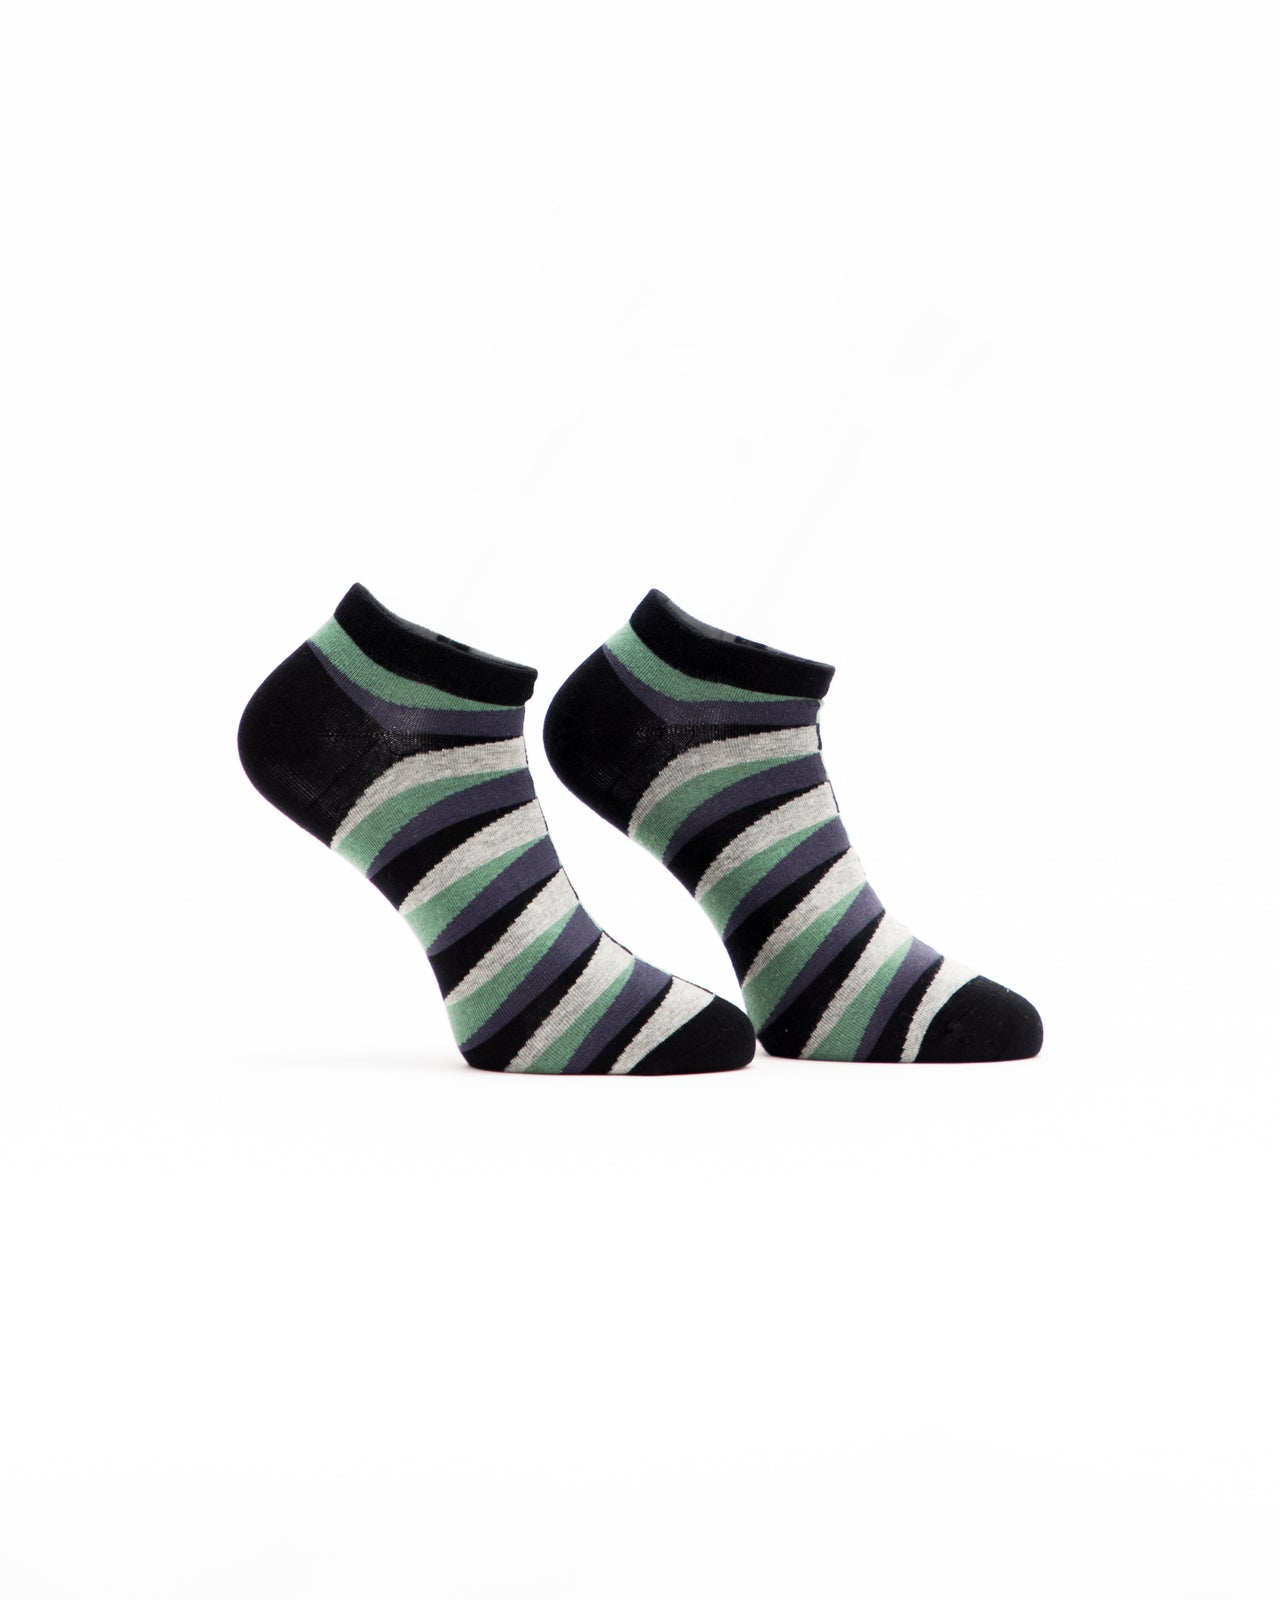 Retro Ankle Sock - Color: Green | Green